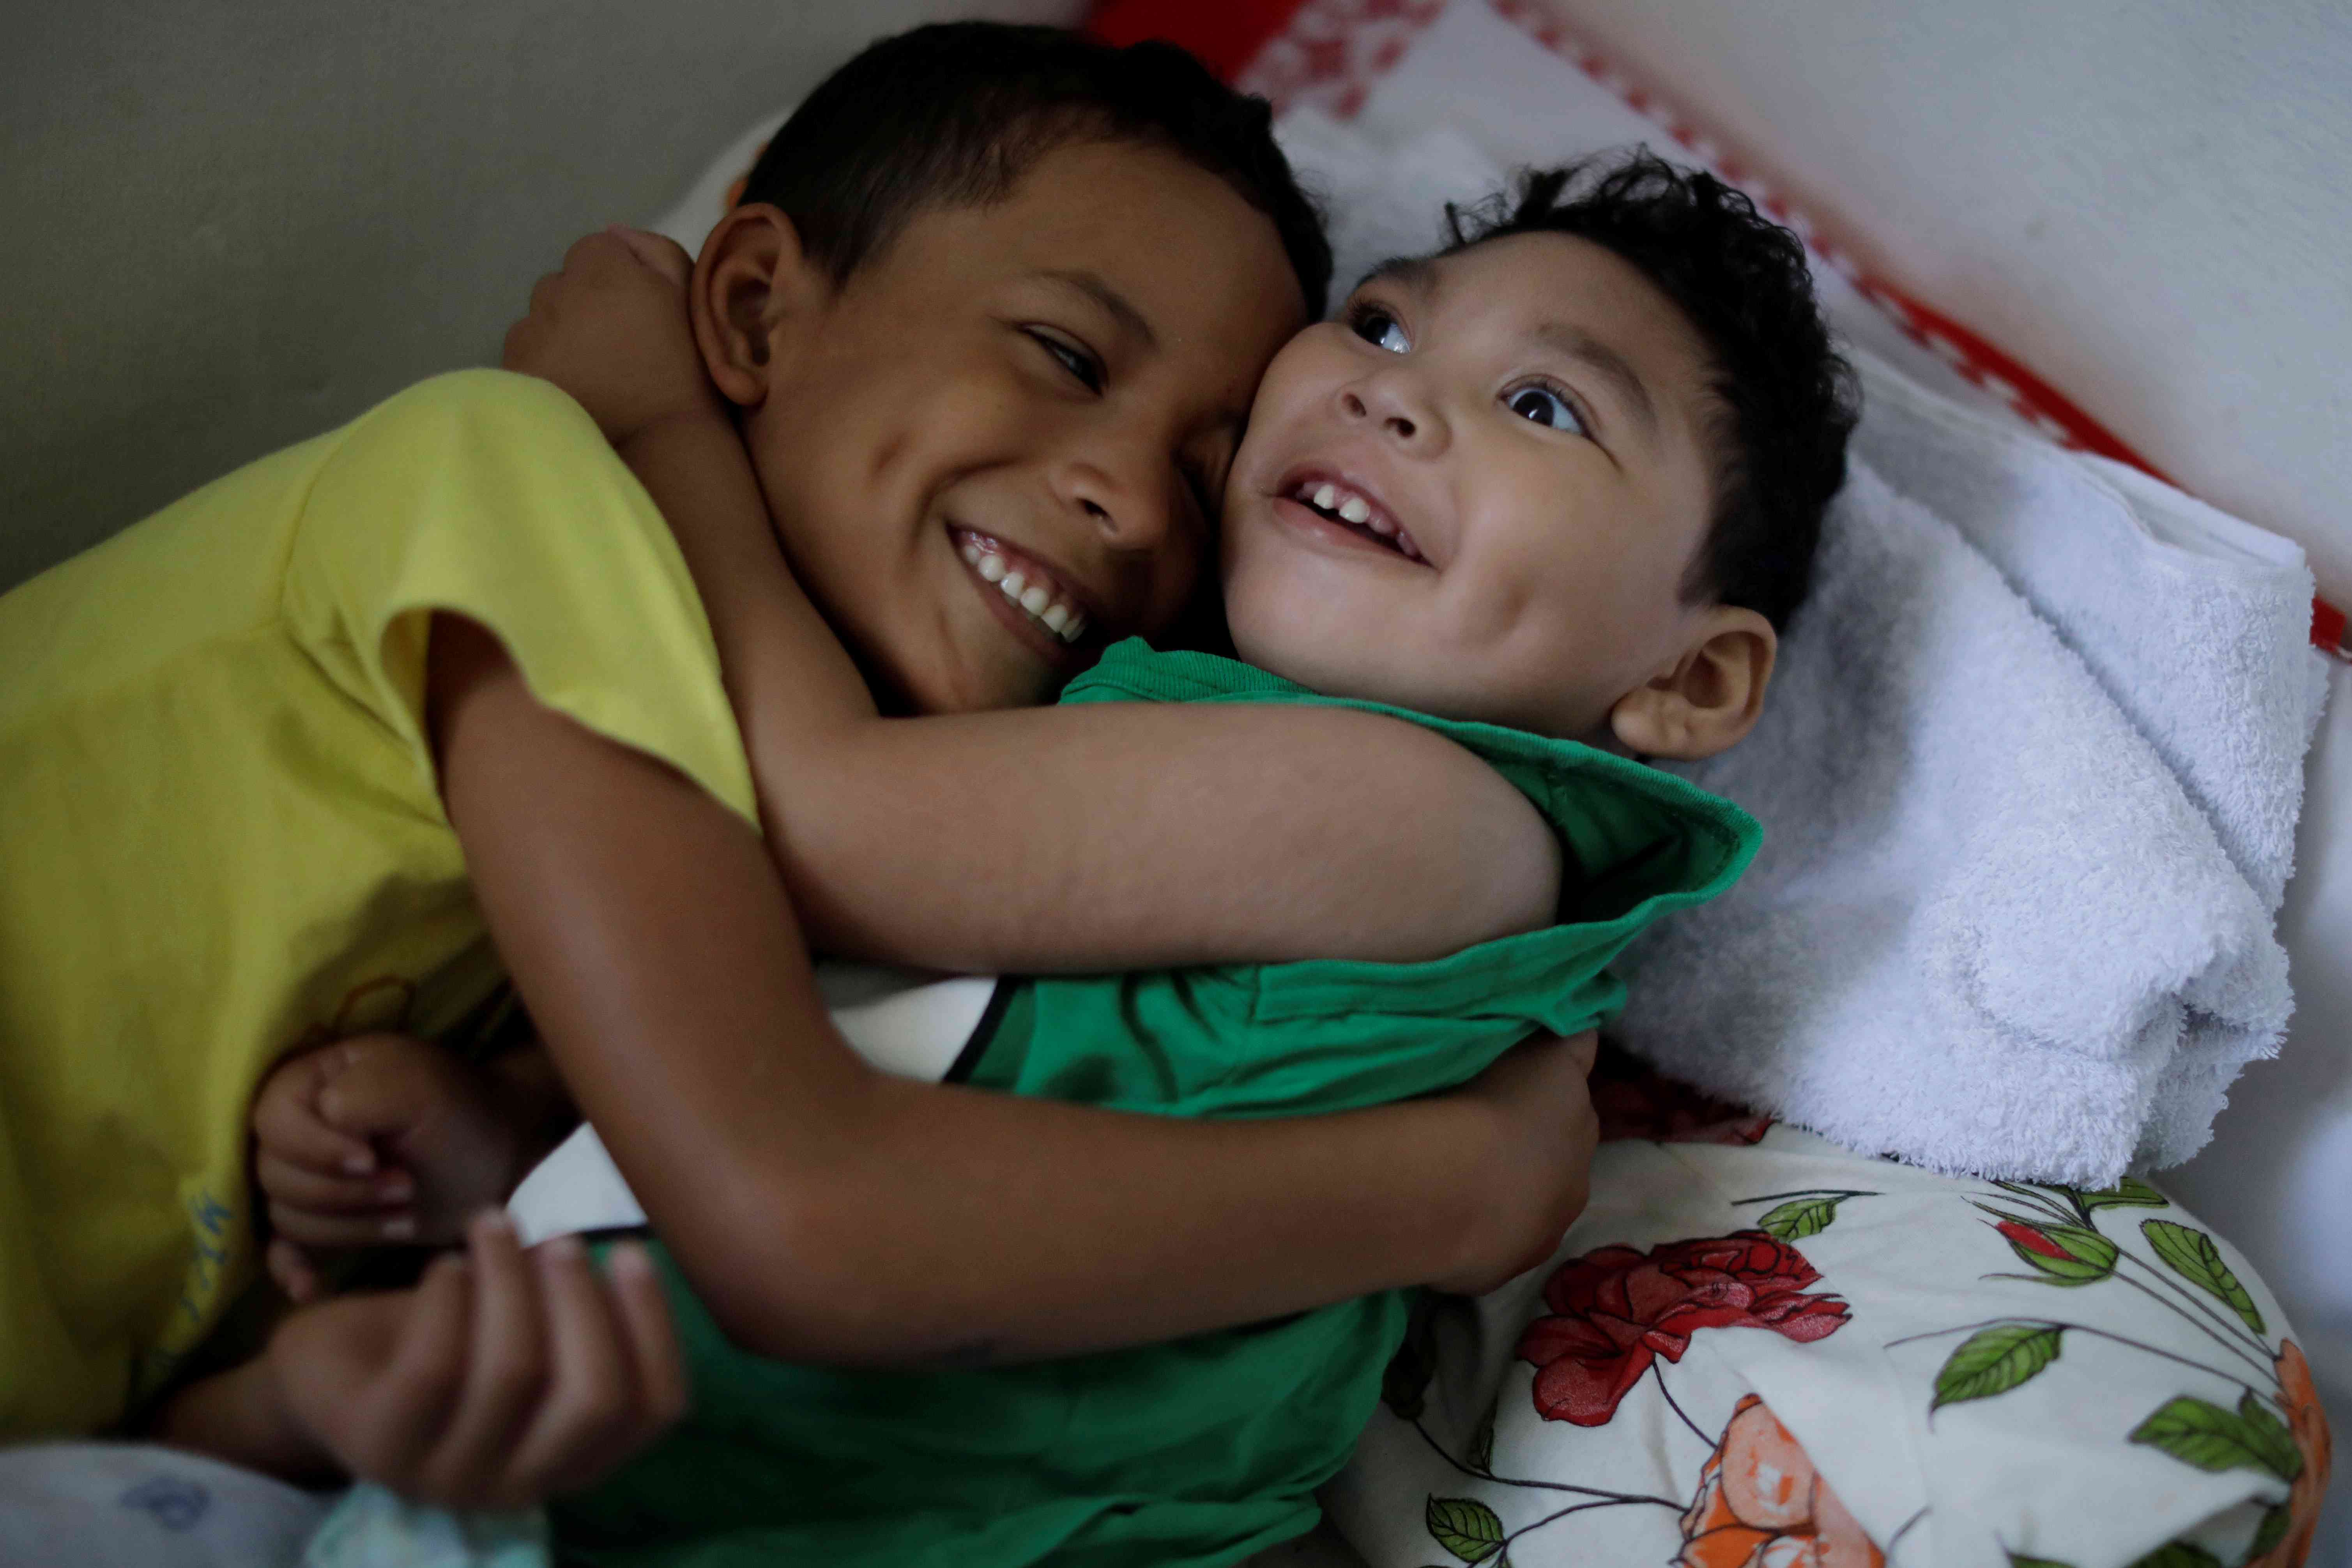 """Daniel Vieira, who is two years old, and was born with microcephaly, is greeted by his brother at their house in Olinda, Brazil, August 7, 2018. During her pregnancy, Daniel's mother Jackeline Vieira de Souza learned that her son had microcephaly. """"When he was born, I fell in love with him because I knew he would be a good thing in my life, even with the difficulties I would have to face."""" Daniel's father separated from Jackeline shortly after learning that his son had microcephaly. He pays a small amount of family support every month, in addition to a monthly check that Jackeline gets from the government. It takes several hours to travel by bus between their home in Olinda and Recife, where Daniel goes for treatments. Lately, those trips are somewhat less frequent, and Jackeline believes Daniel's health is more stable. She has no illusions that her son will ever walk, eat on his own or live a normal life. Yet in many ways she is grateful for her """"miracle"""" baby, who she says makes her feel """"happy and more accomplished"""". (Photo: Ueslei Marcelino/Reuters)"""